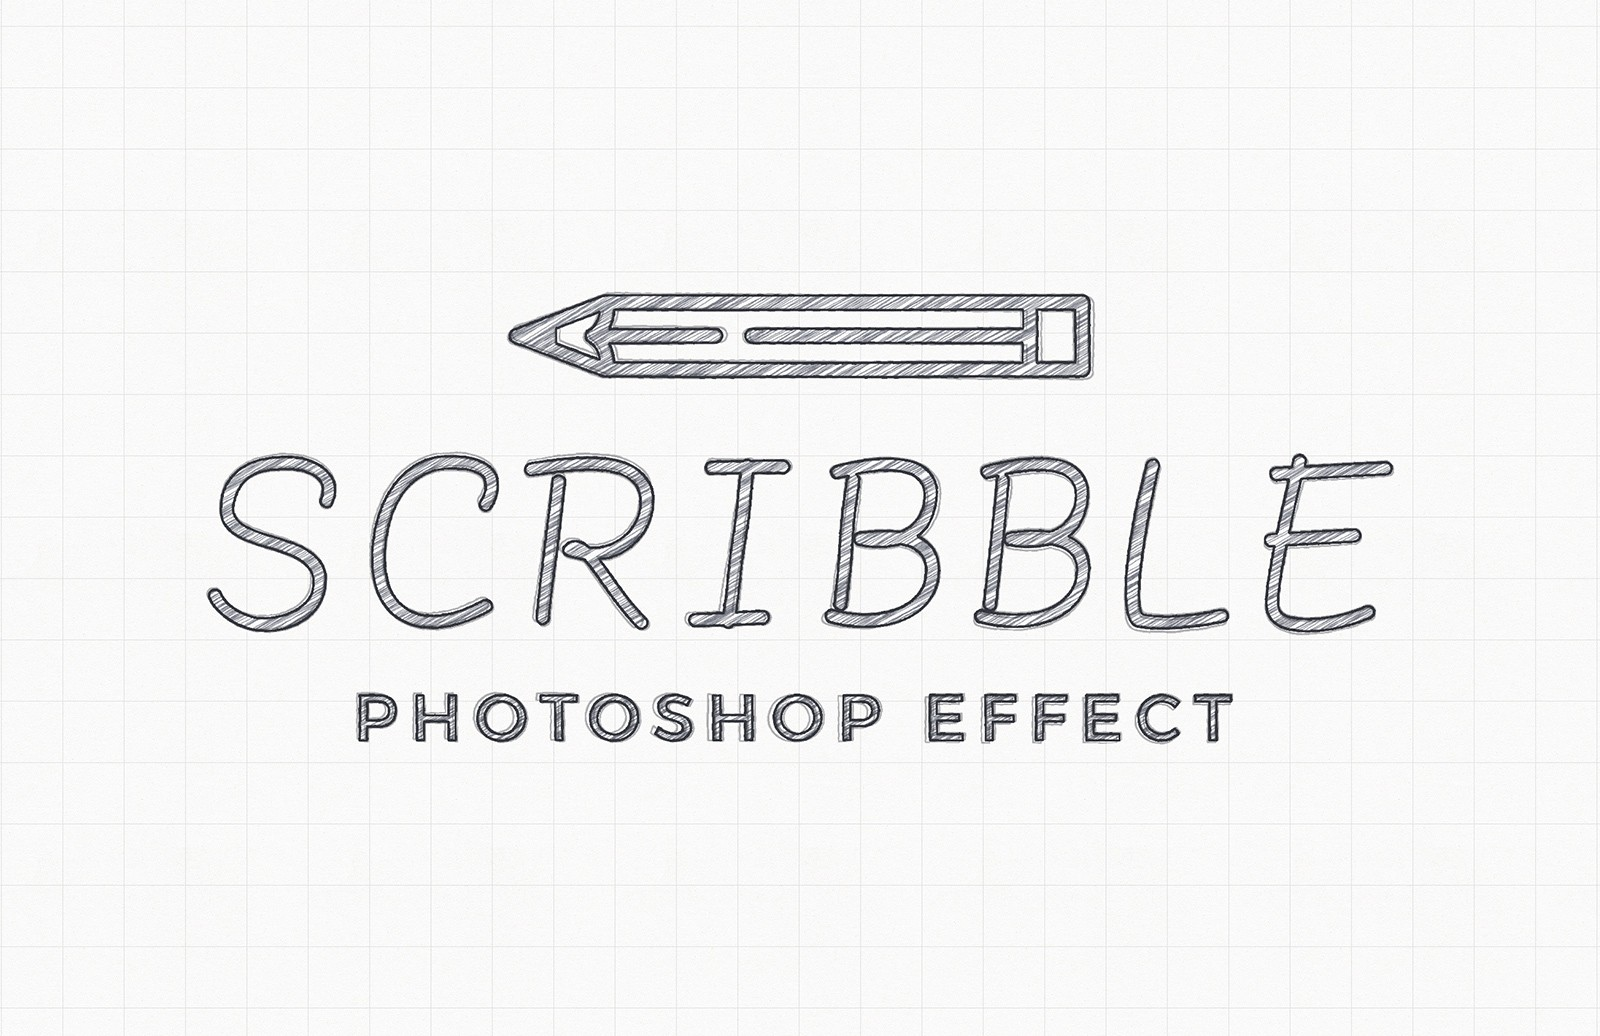 Large Scribble Photoshop Effect Mockup Preview 1